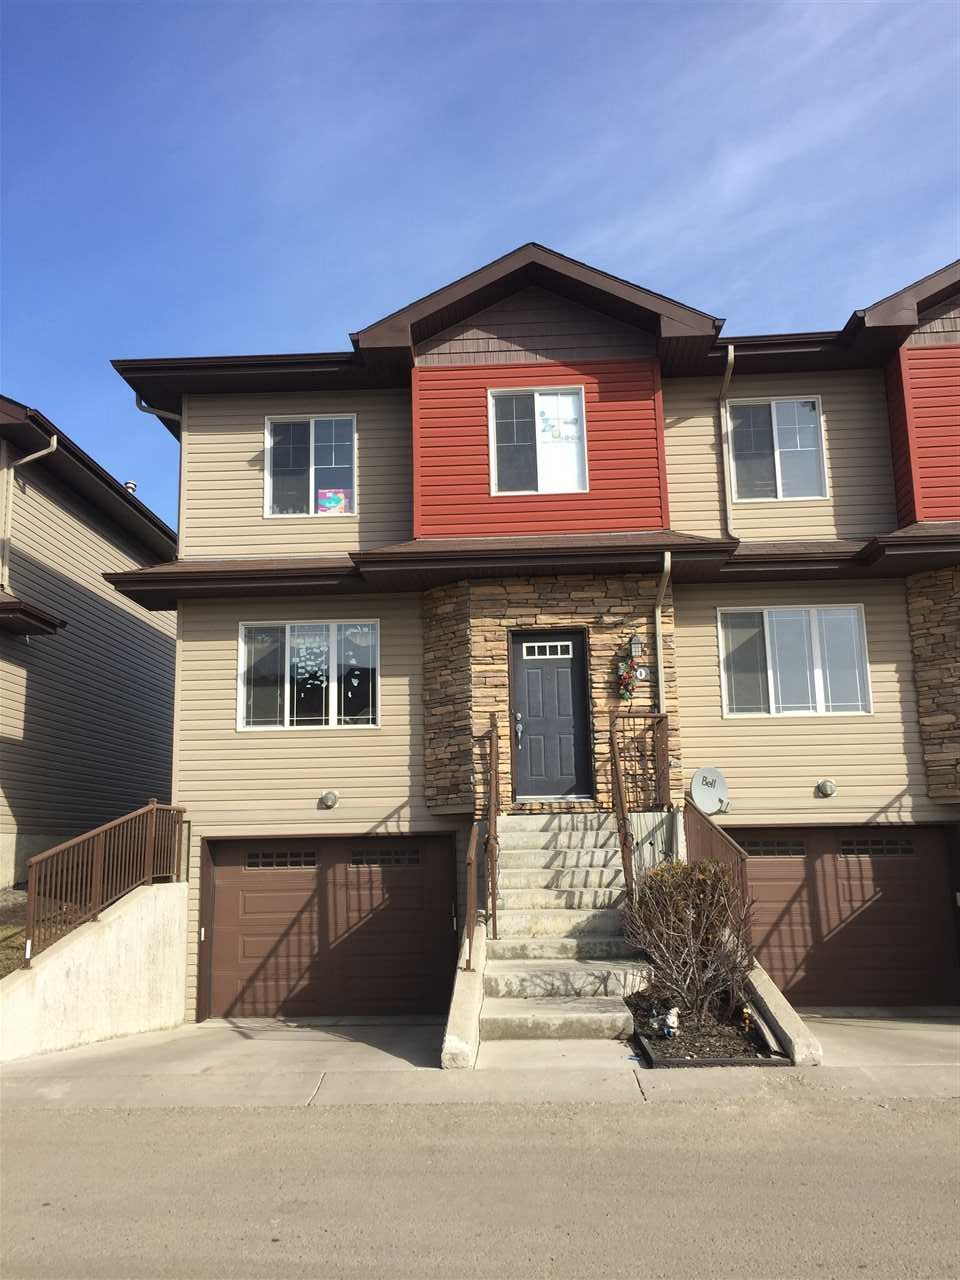 FANTASTIC LOCATION in prestigious Morello Gate, highly desirable 3 bedroom, 2 ½ bathroom QUIET END-UNIT townhome, minutes from the Anthony Henday & within a 5-minute walk to shopping, restaurants, medical services, entertainment, schools, walking trails, parks & public transportation & more. Features washer, dryer, dishwasher, stove, range hood microwave, garburator, 2 refrigerators, bright open kitchen, gas fireplace, private composite deck facing mature trees & manicured grass, large master bedroom c/w dual sink ensuite, private tandem underground parking, exceptional multi-use room, amazing storage areas, extremely low home owner fees, fantastic visitor parking, and much more. Well maintained, well managed with an extremely strong reserve fund.  Perfect for owners and investors alike.